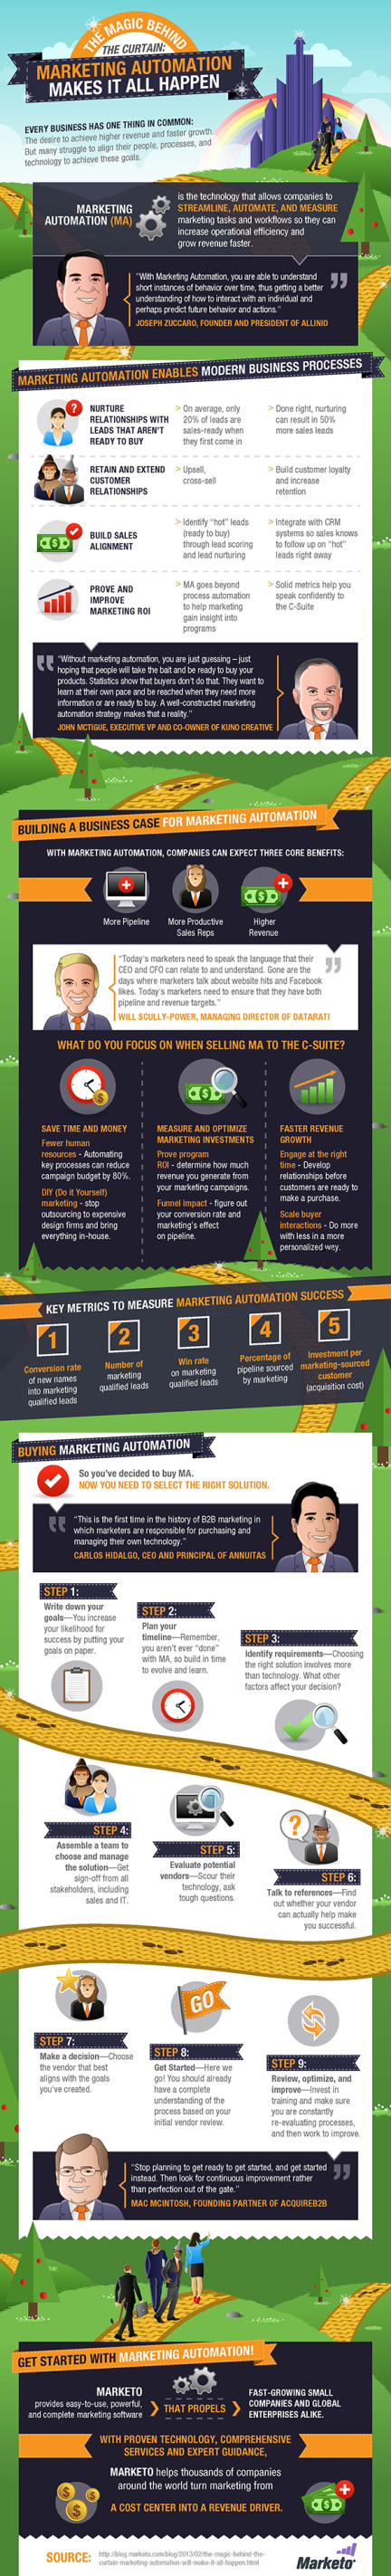 How to Increase Efficiency & Grow Faster Using Marketing Automation